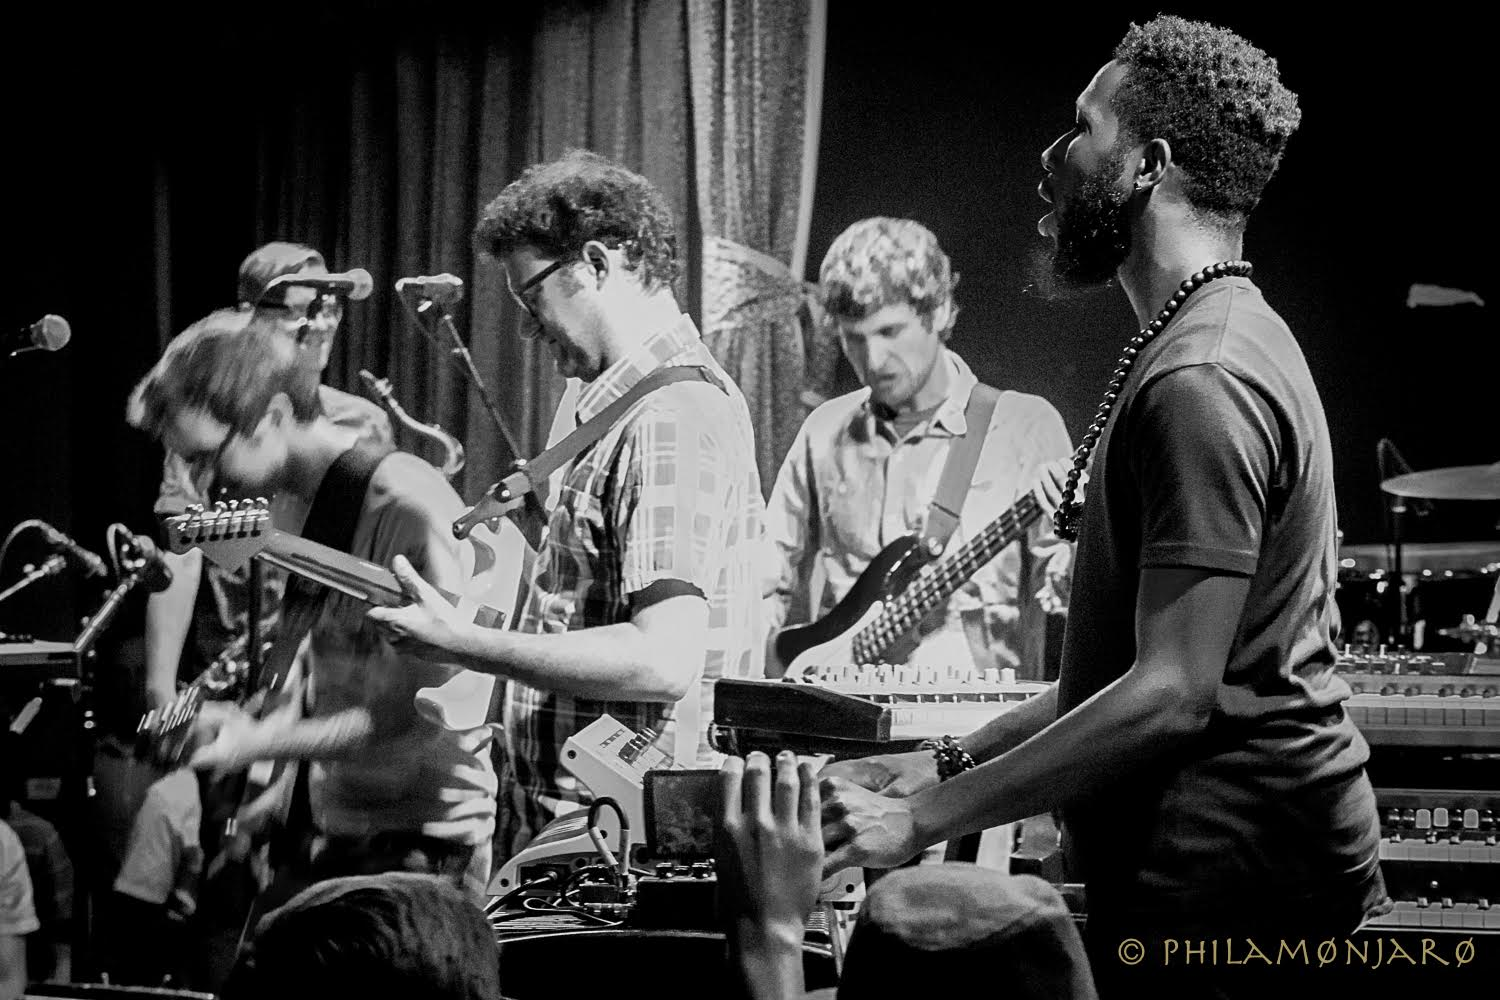 Photos / Video | Bill Frisell & Snarky Puppy @ City Winery